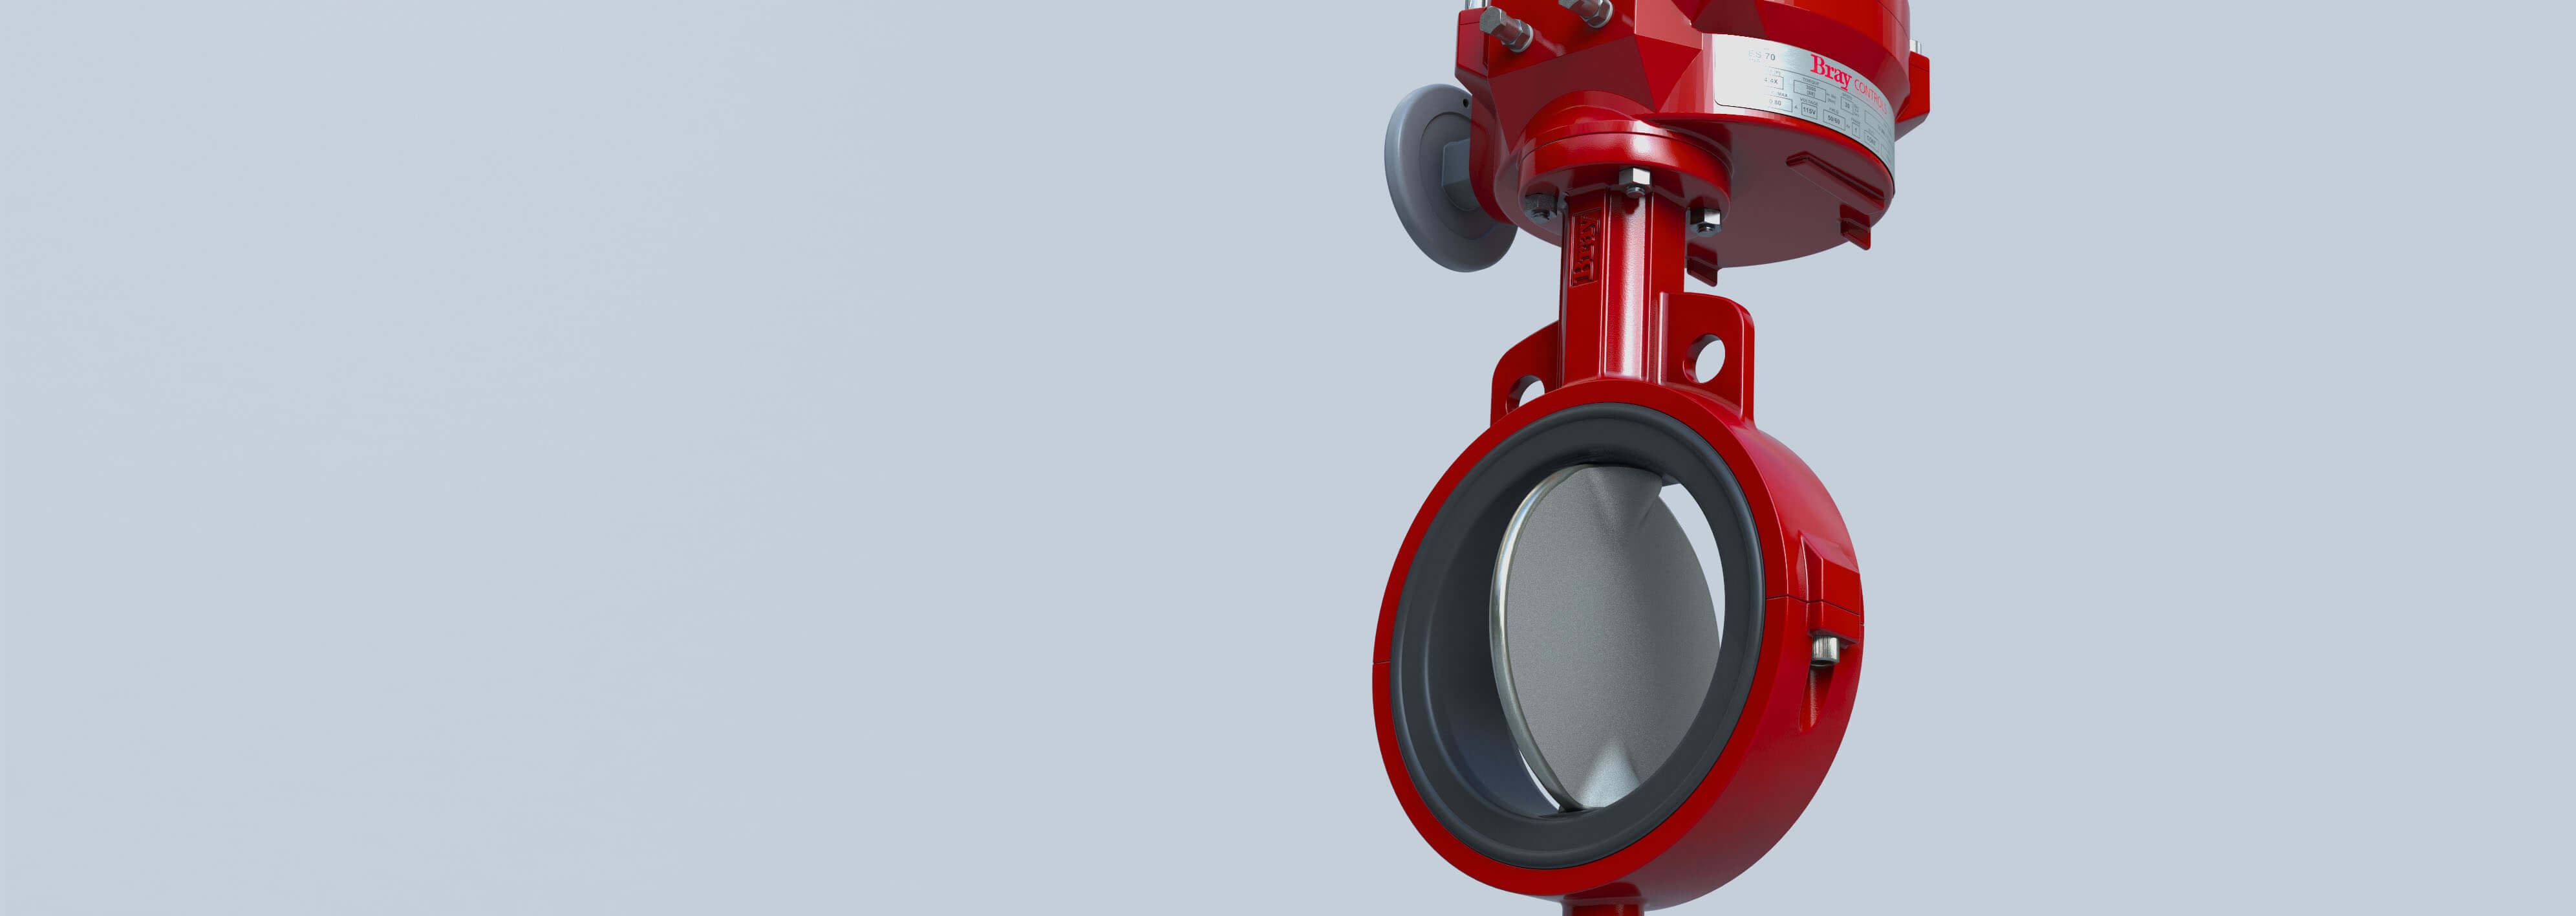 Resilient Seated Butterfly Valve Series 2021 Bray International